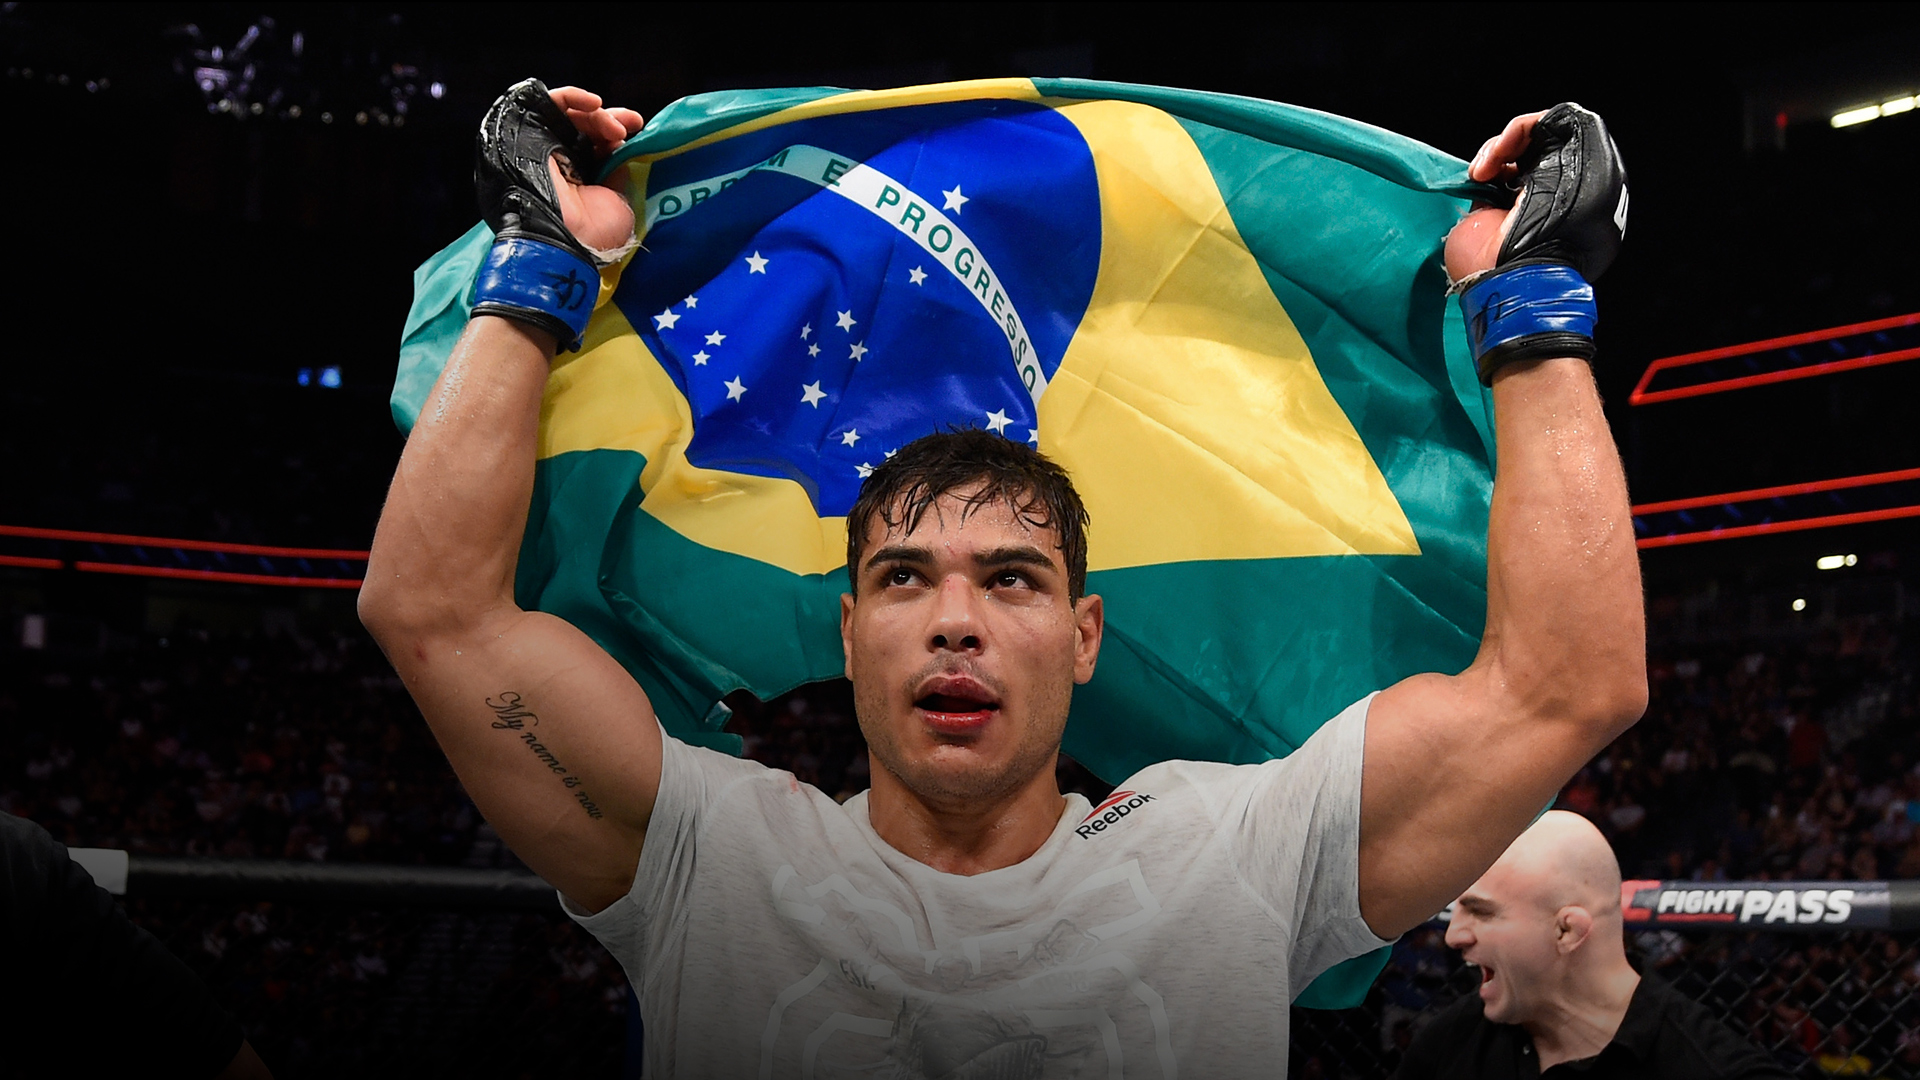 Paulo Costa of Brazil celebrates his win over Uriah Hall of Jamaica in their middleweight fight during the UFC 226 event inside T-Mobile Arena on July 7, 2018 in Las Vegas, Nevada. (Photo by Josh Hedges/Zuffa LLC)